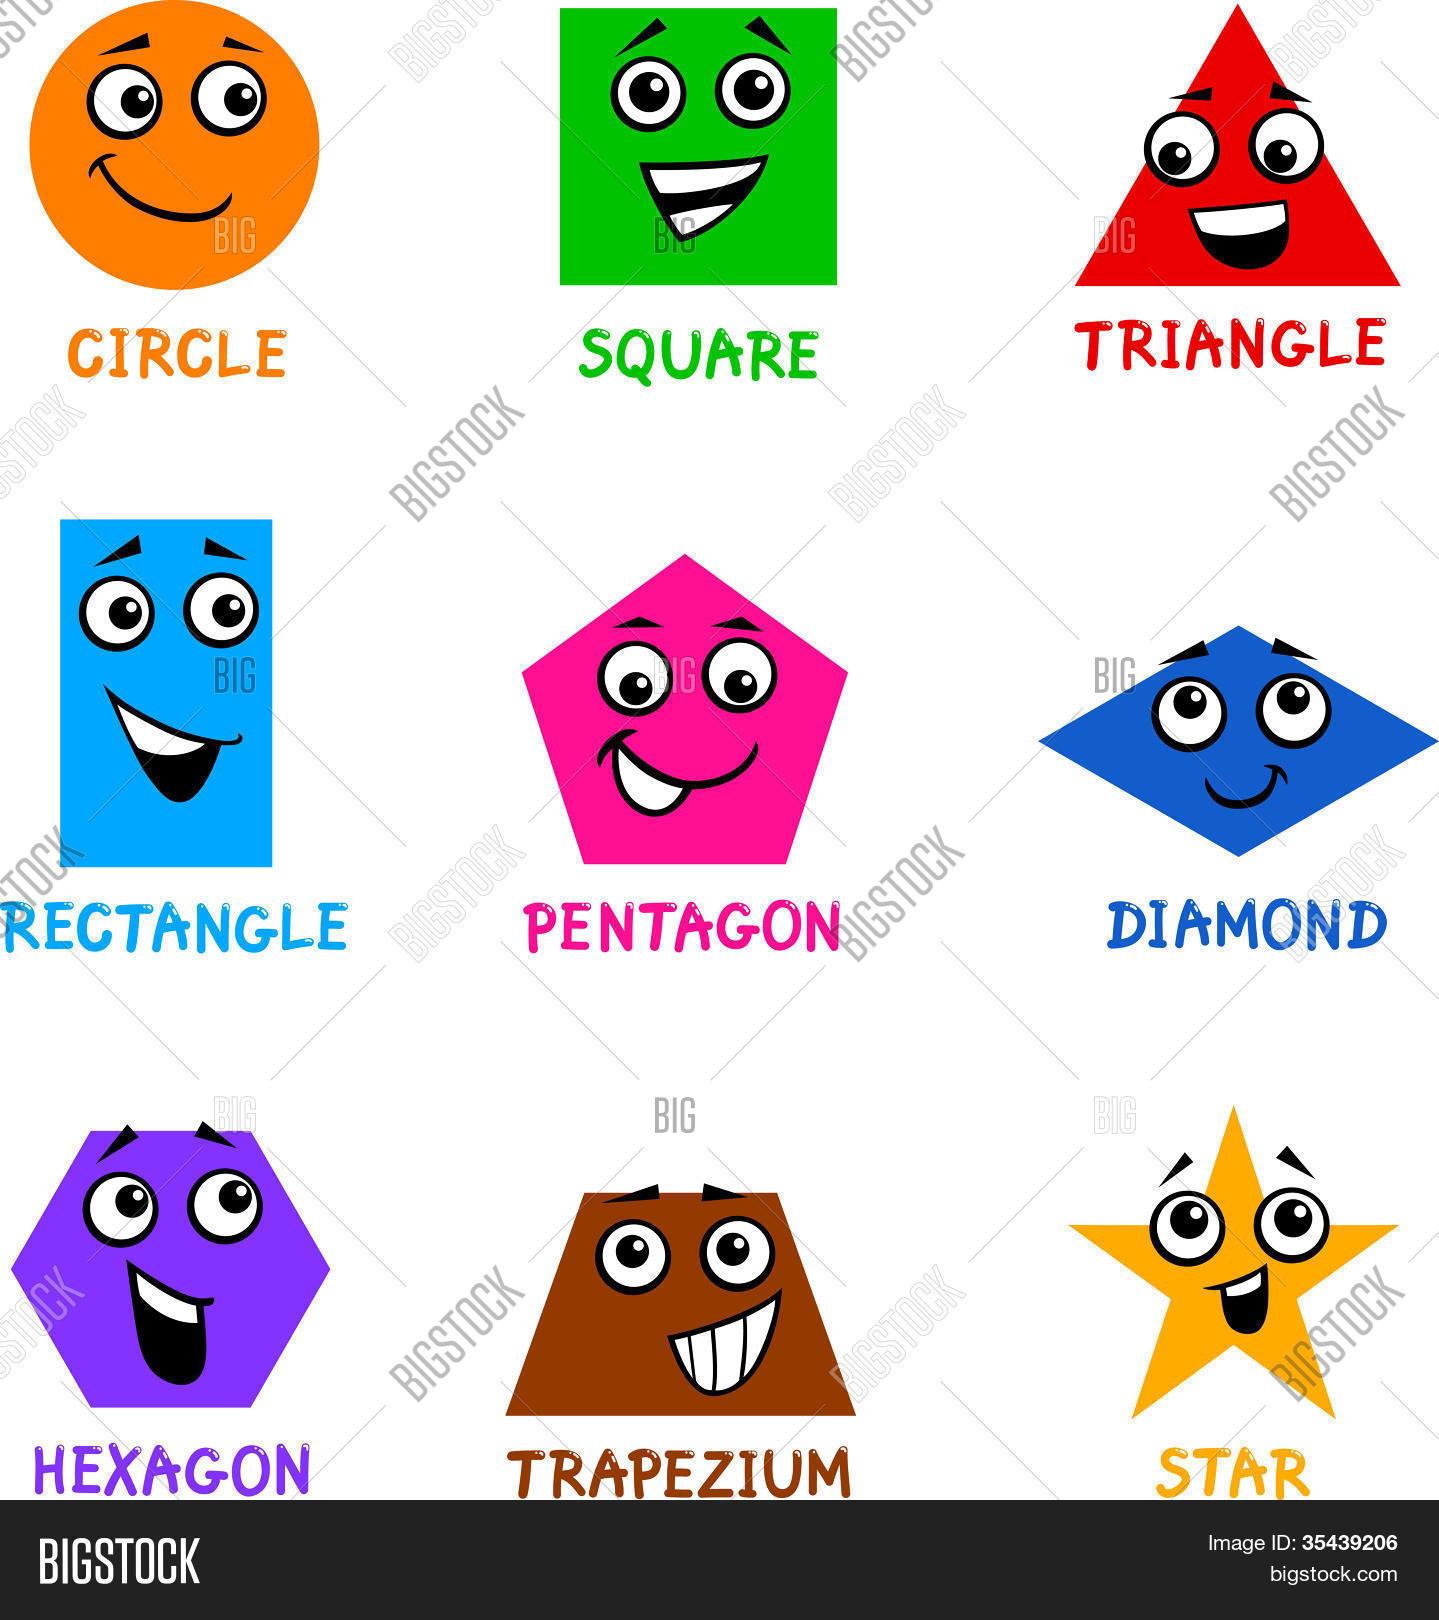 Basic Geometric Shapes Cartoon Vector Amp Photo